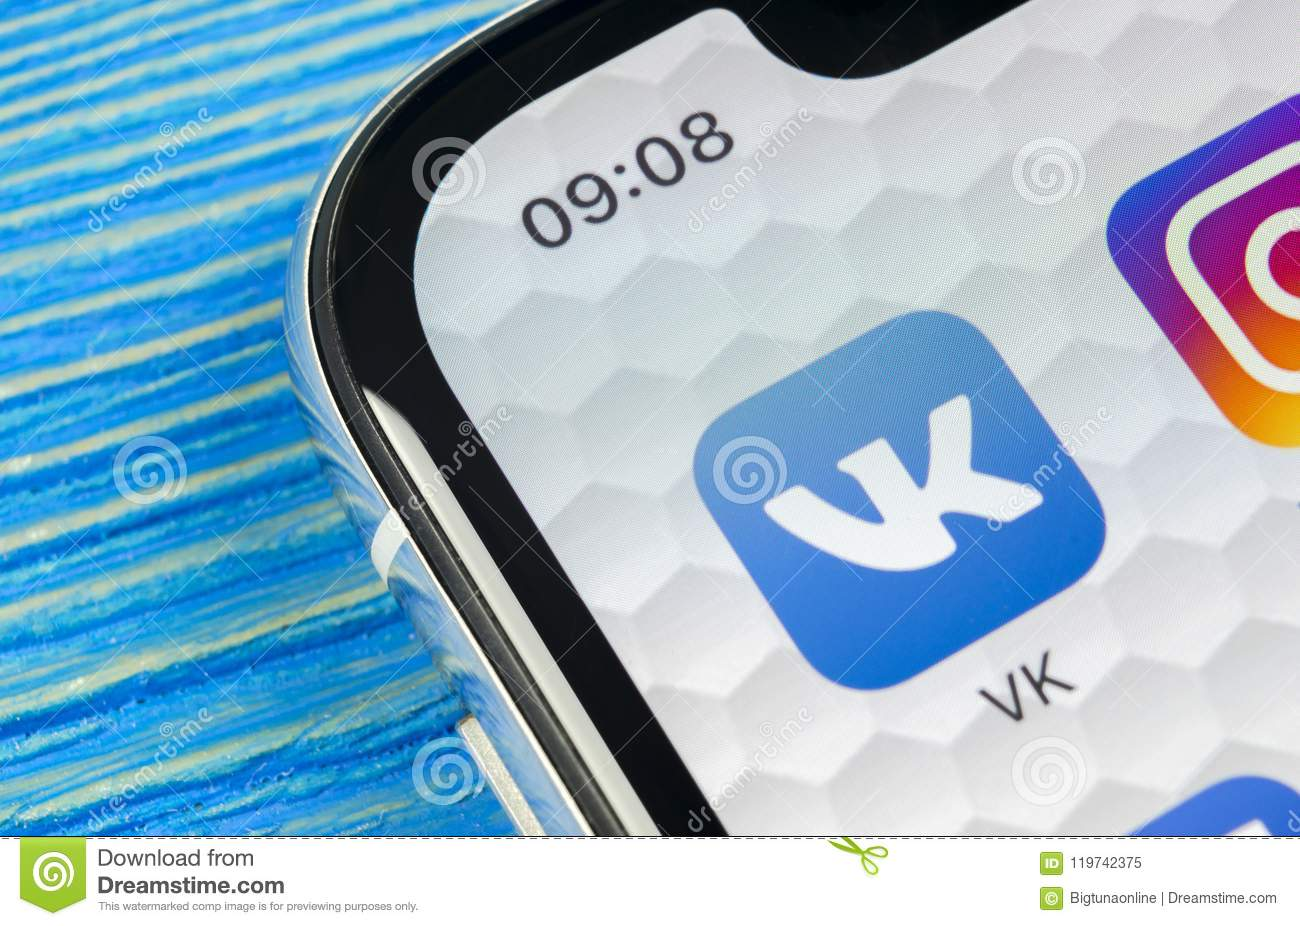 Vkontakte Application Icon On Apple IPhone X Screen Close-up